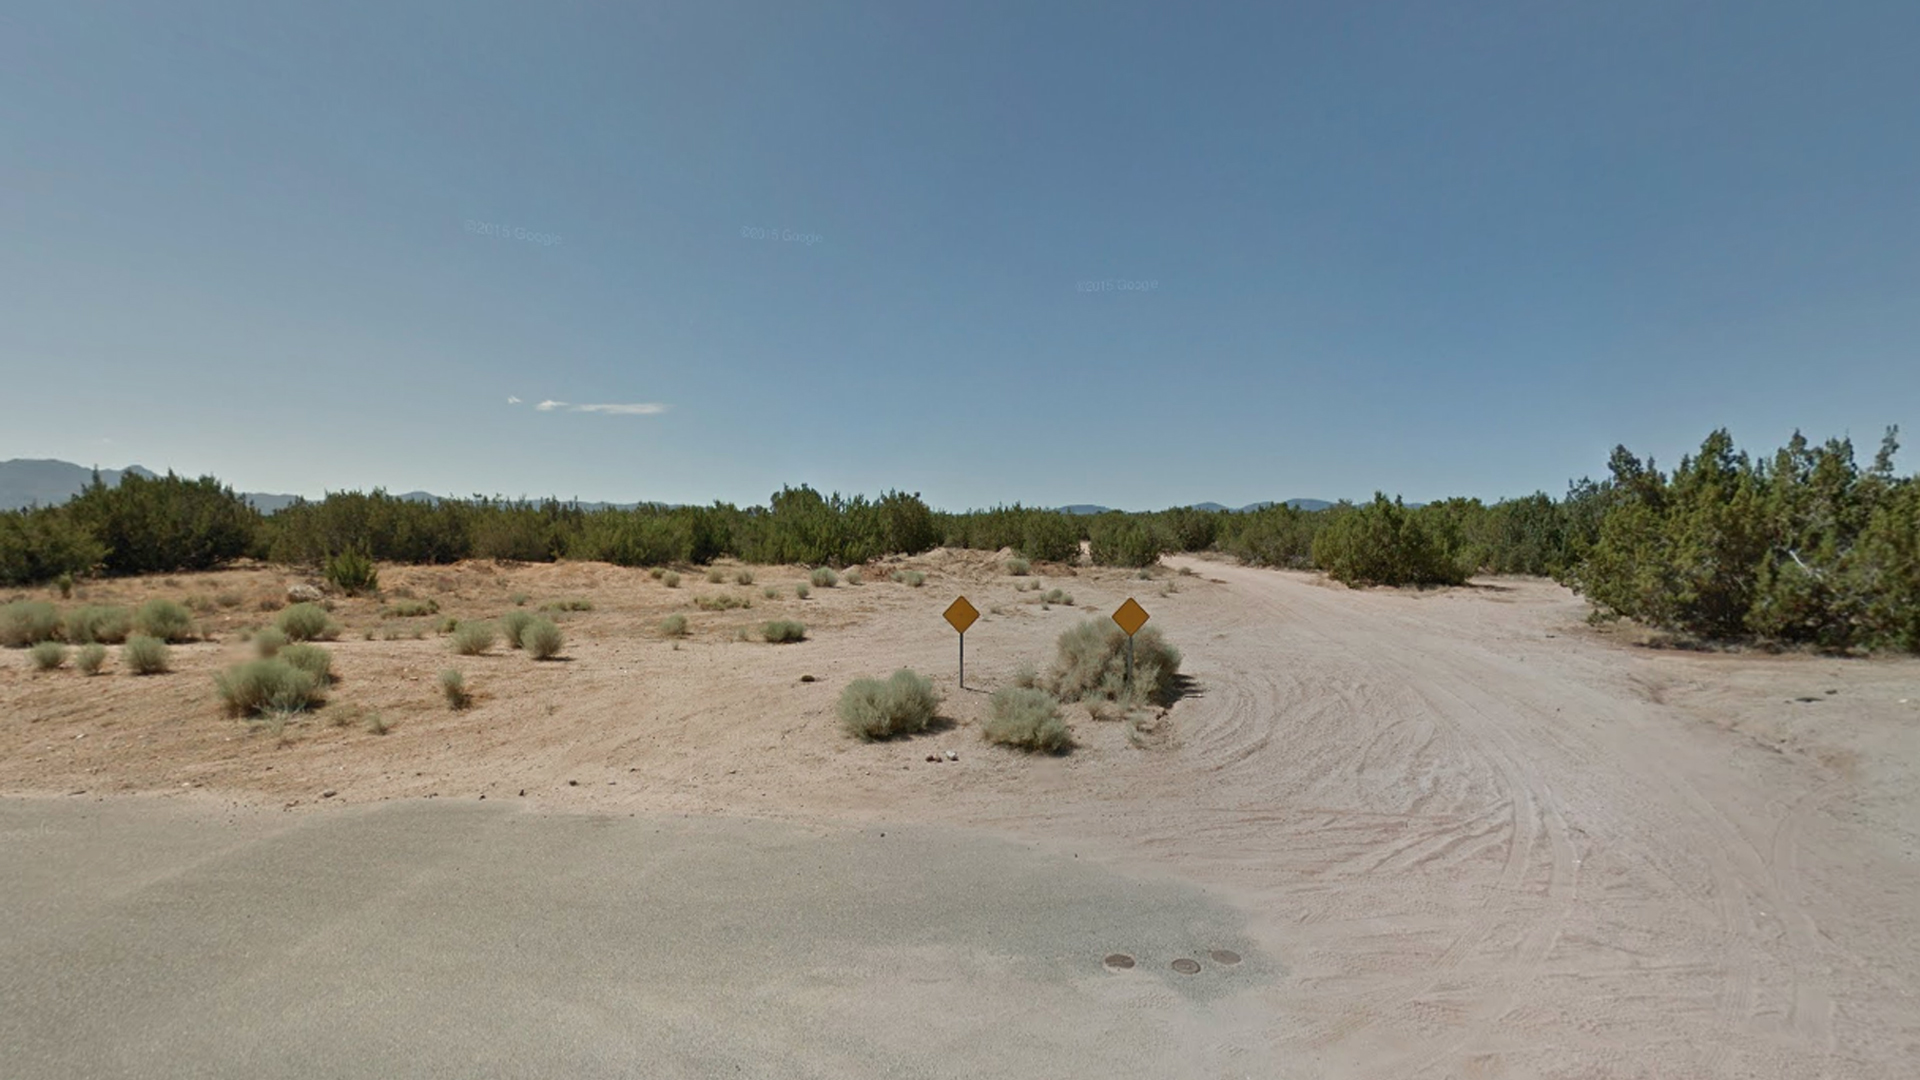 The rural area south of Farmington Street in Hesperia is seen in a Google Maps Street View Image.